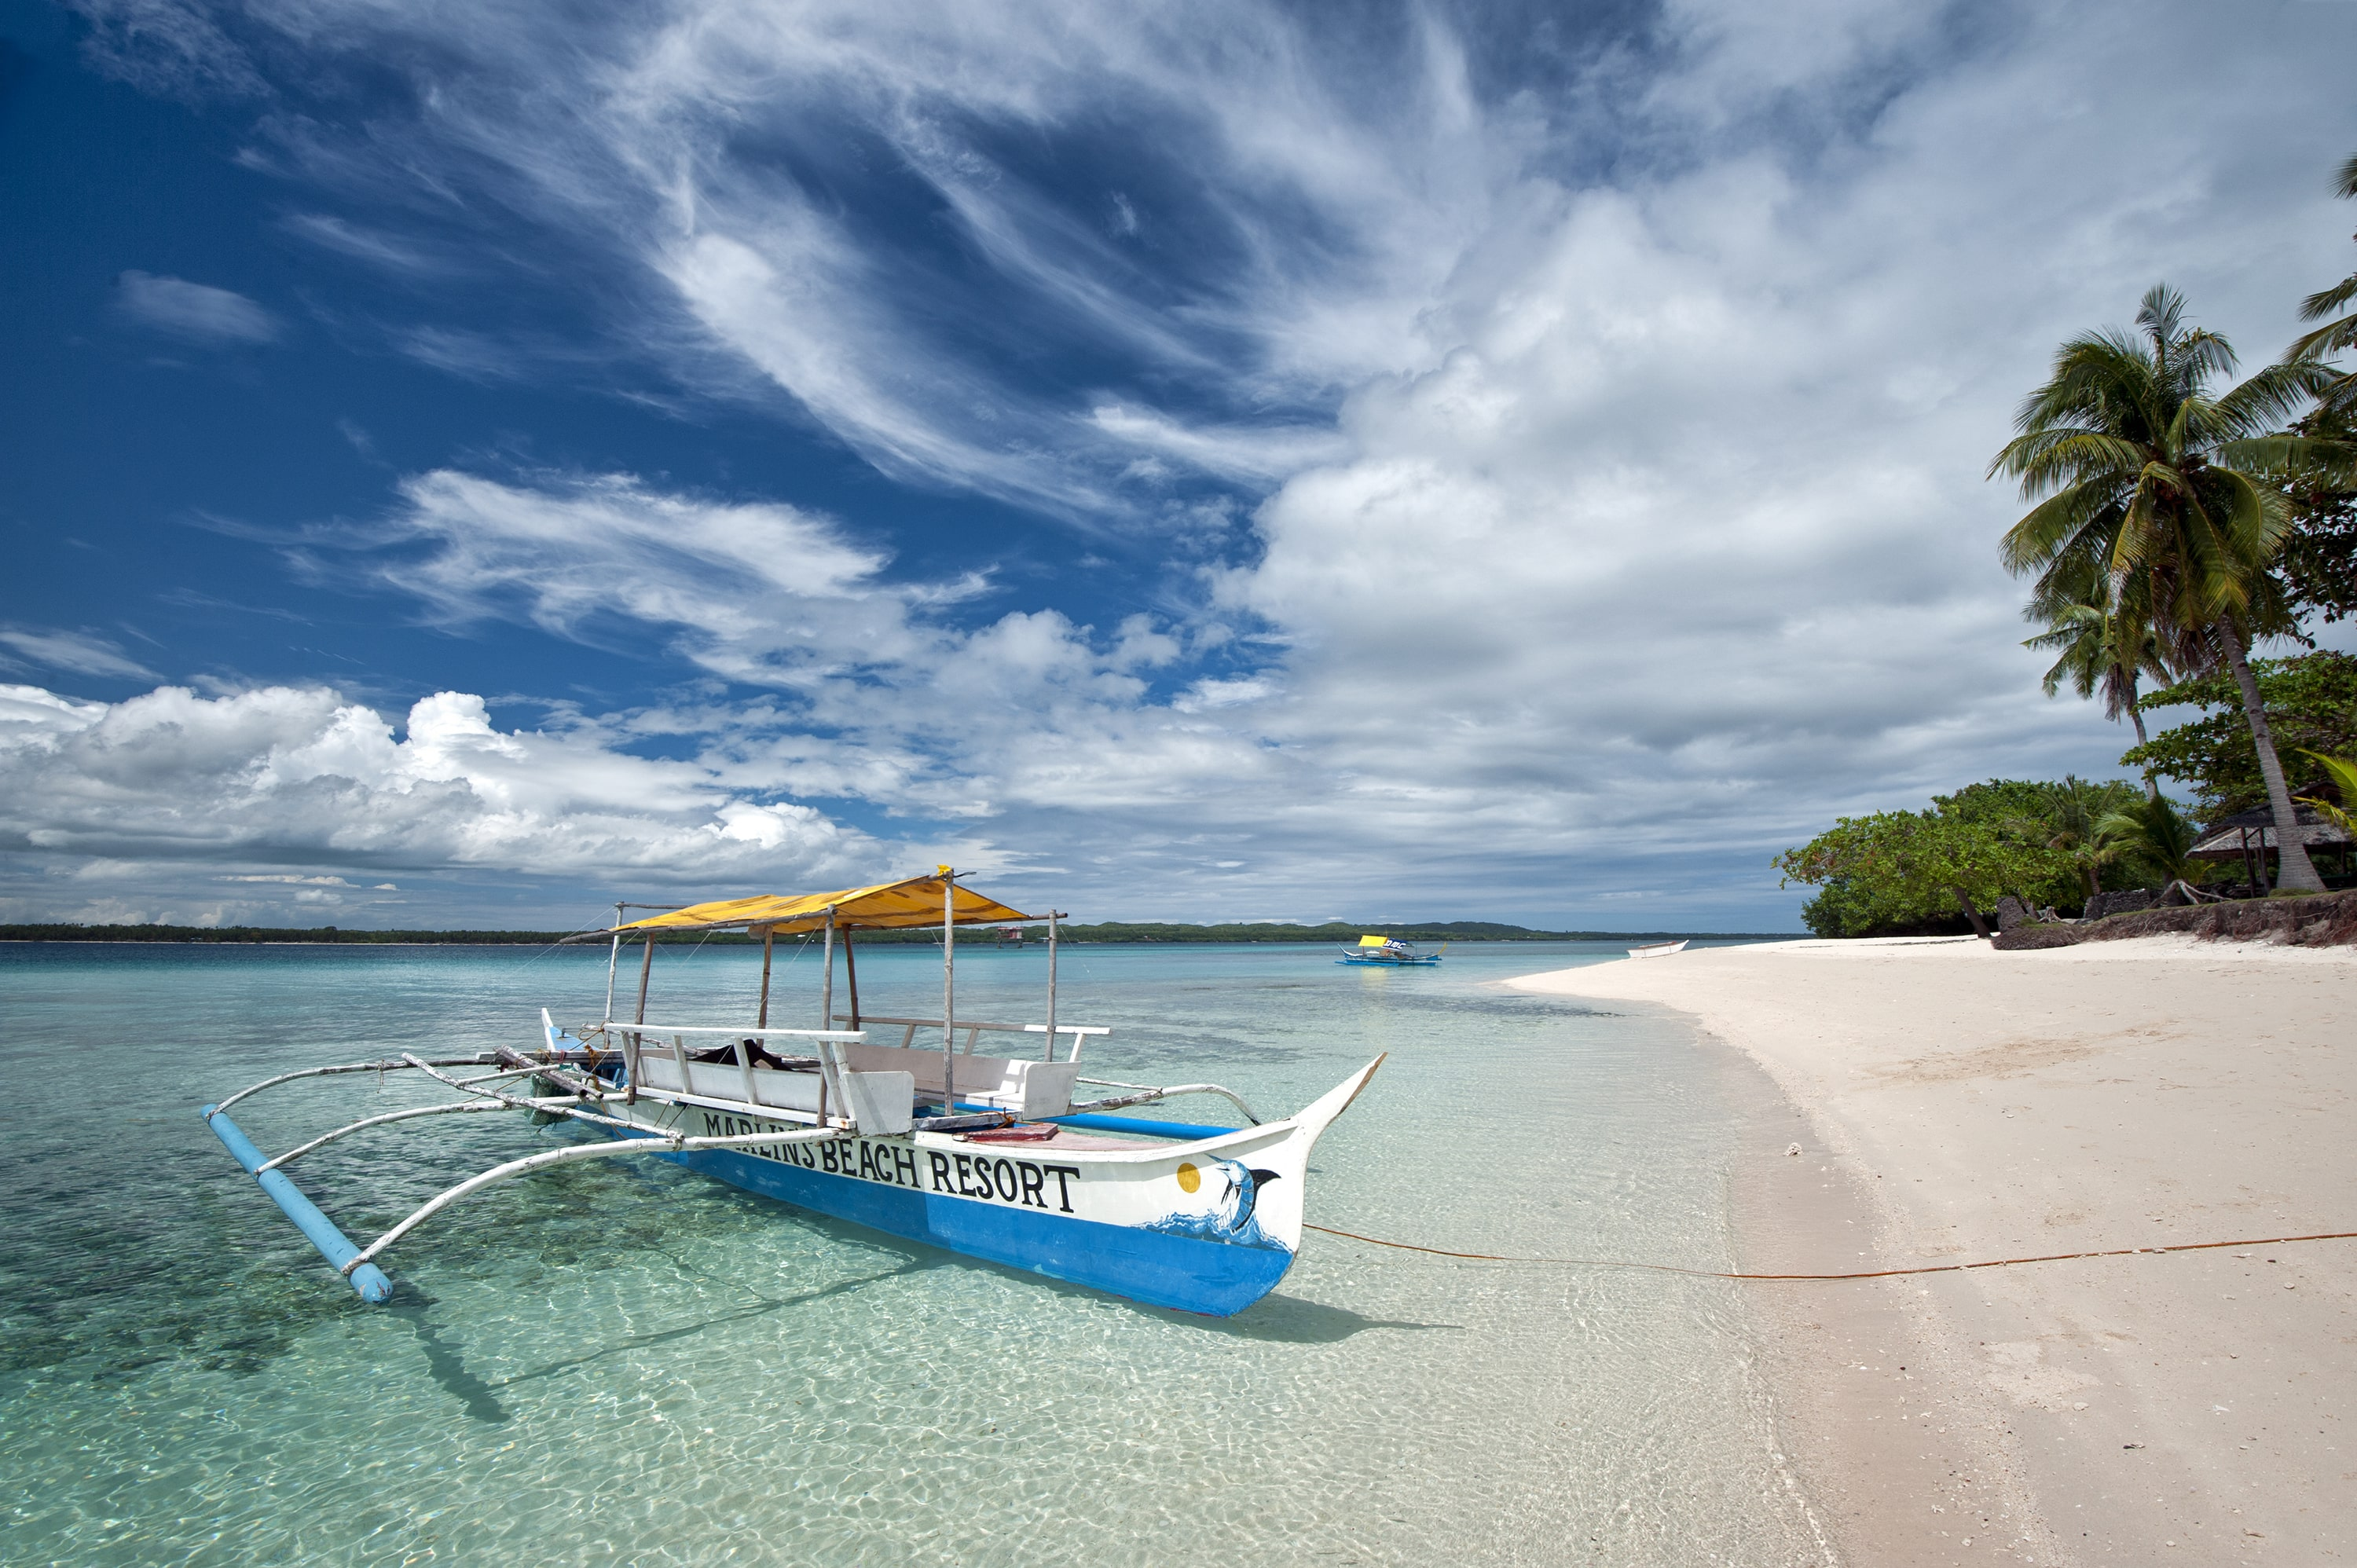 A tourist boat used for traveling to Bantayan Island